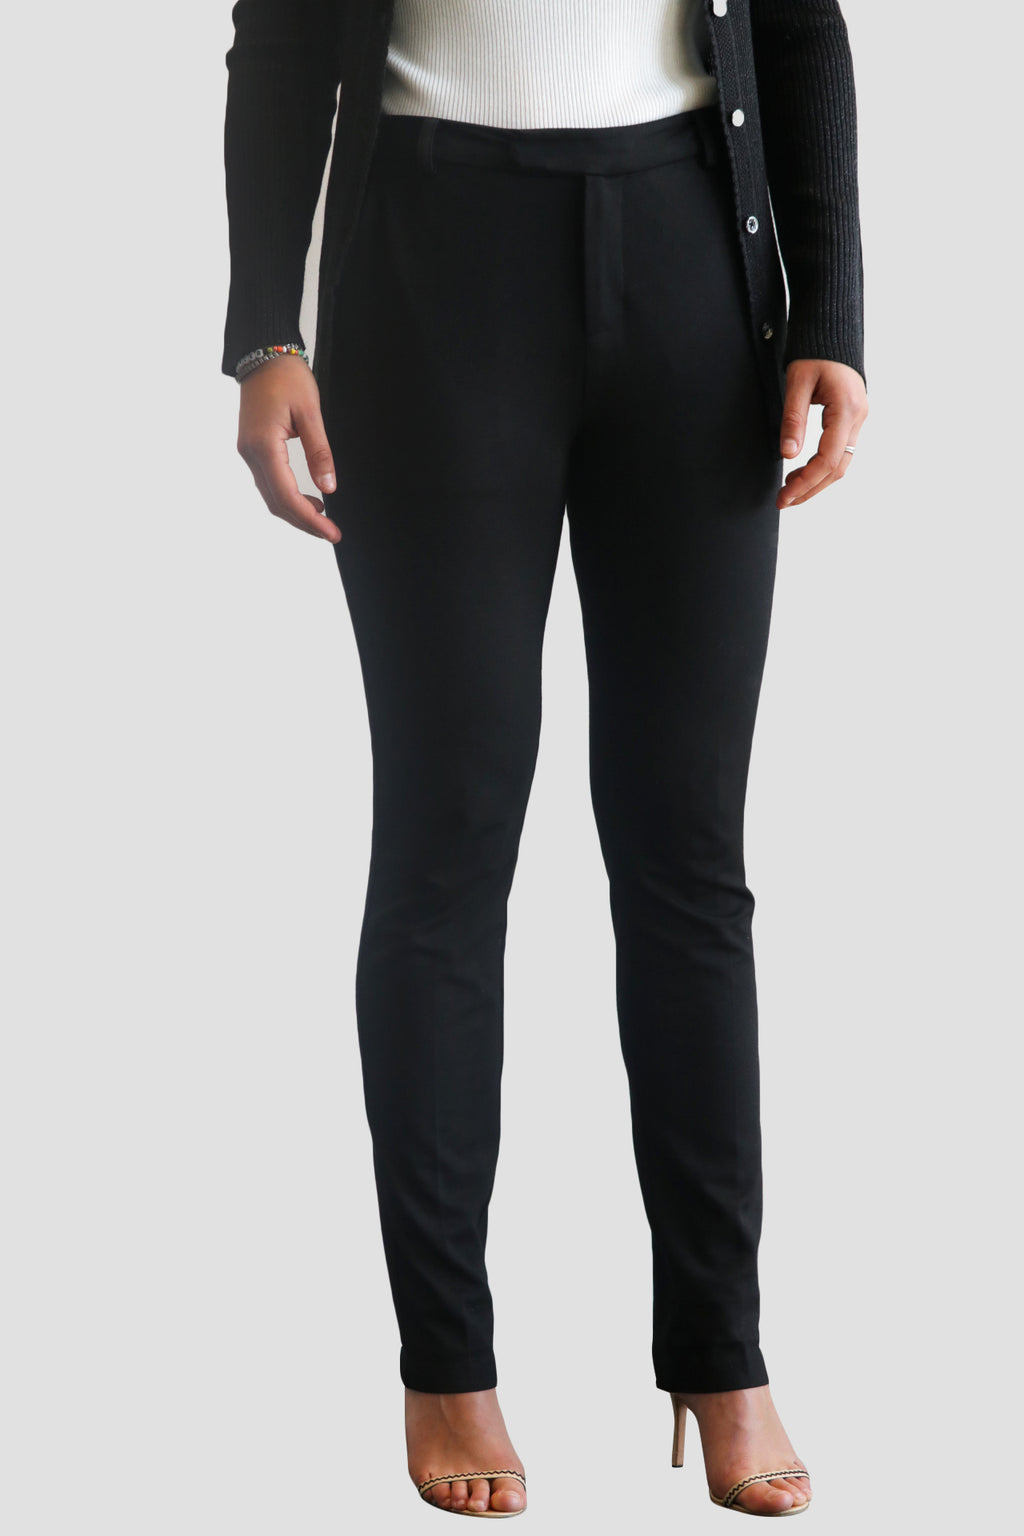 emma chai 4-way-stretch pants @emmachaiofficial emma chai. Crafted from polyester, viscose and spandex, with a soft stretch quality. side pockets. ykk zippers. Tapered leg. zip fly. Deep side pockets big enough for iPhone 8. Welted back pockets